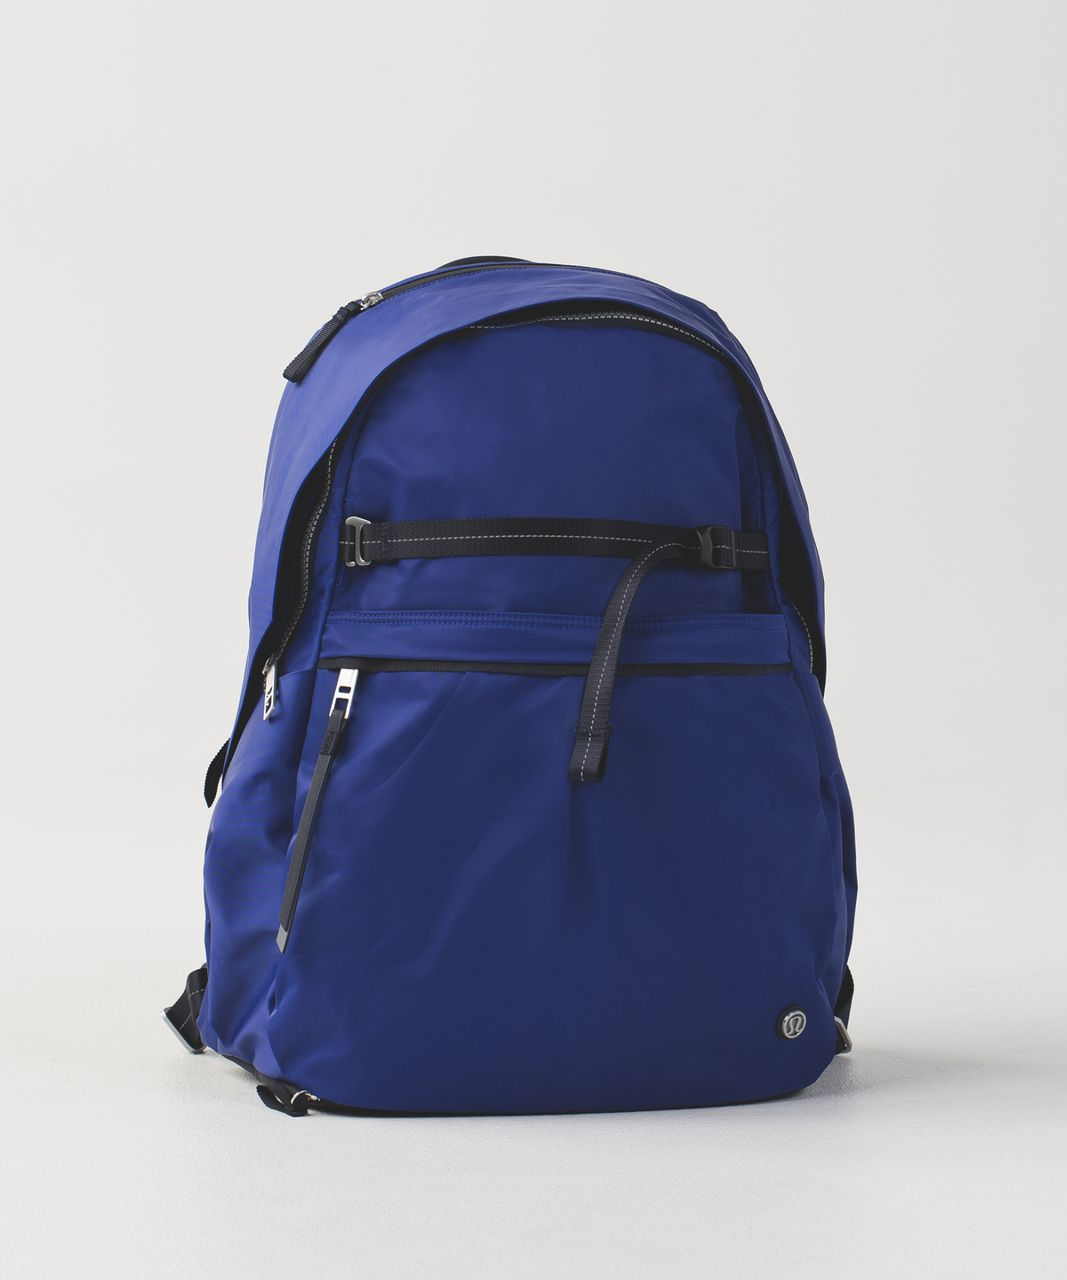 373f0d1510d2 Lululemon Pack It Up Backpack - Sapphire Blue   Naval Blue - lulu fanatics